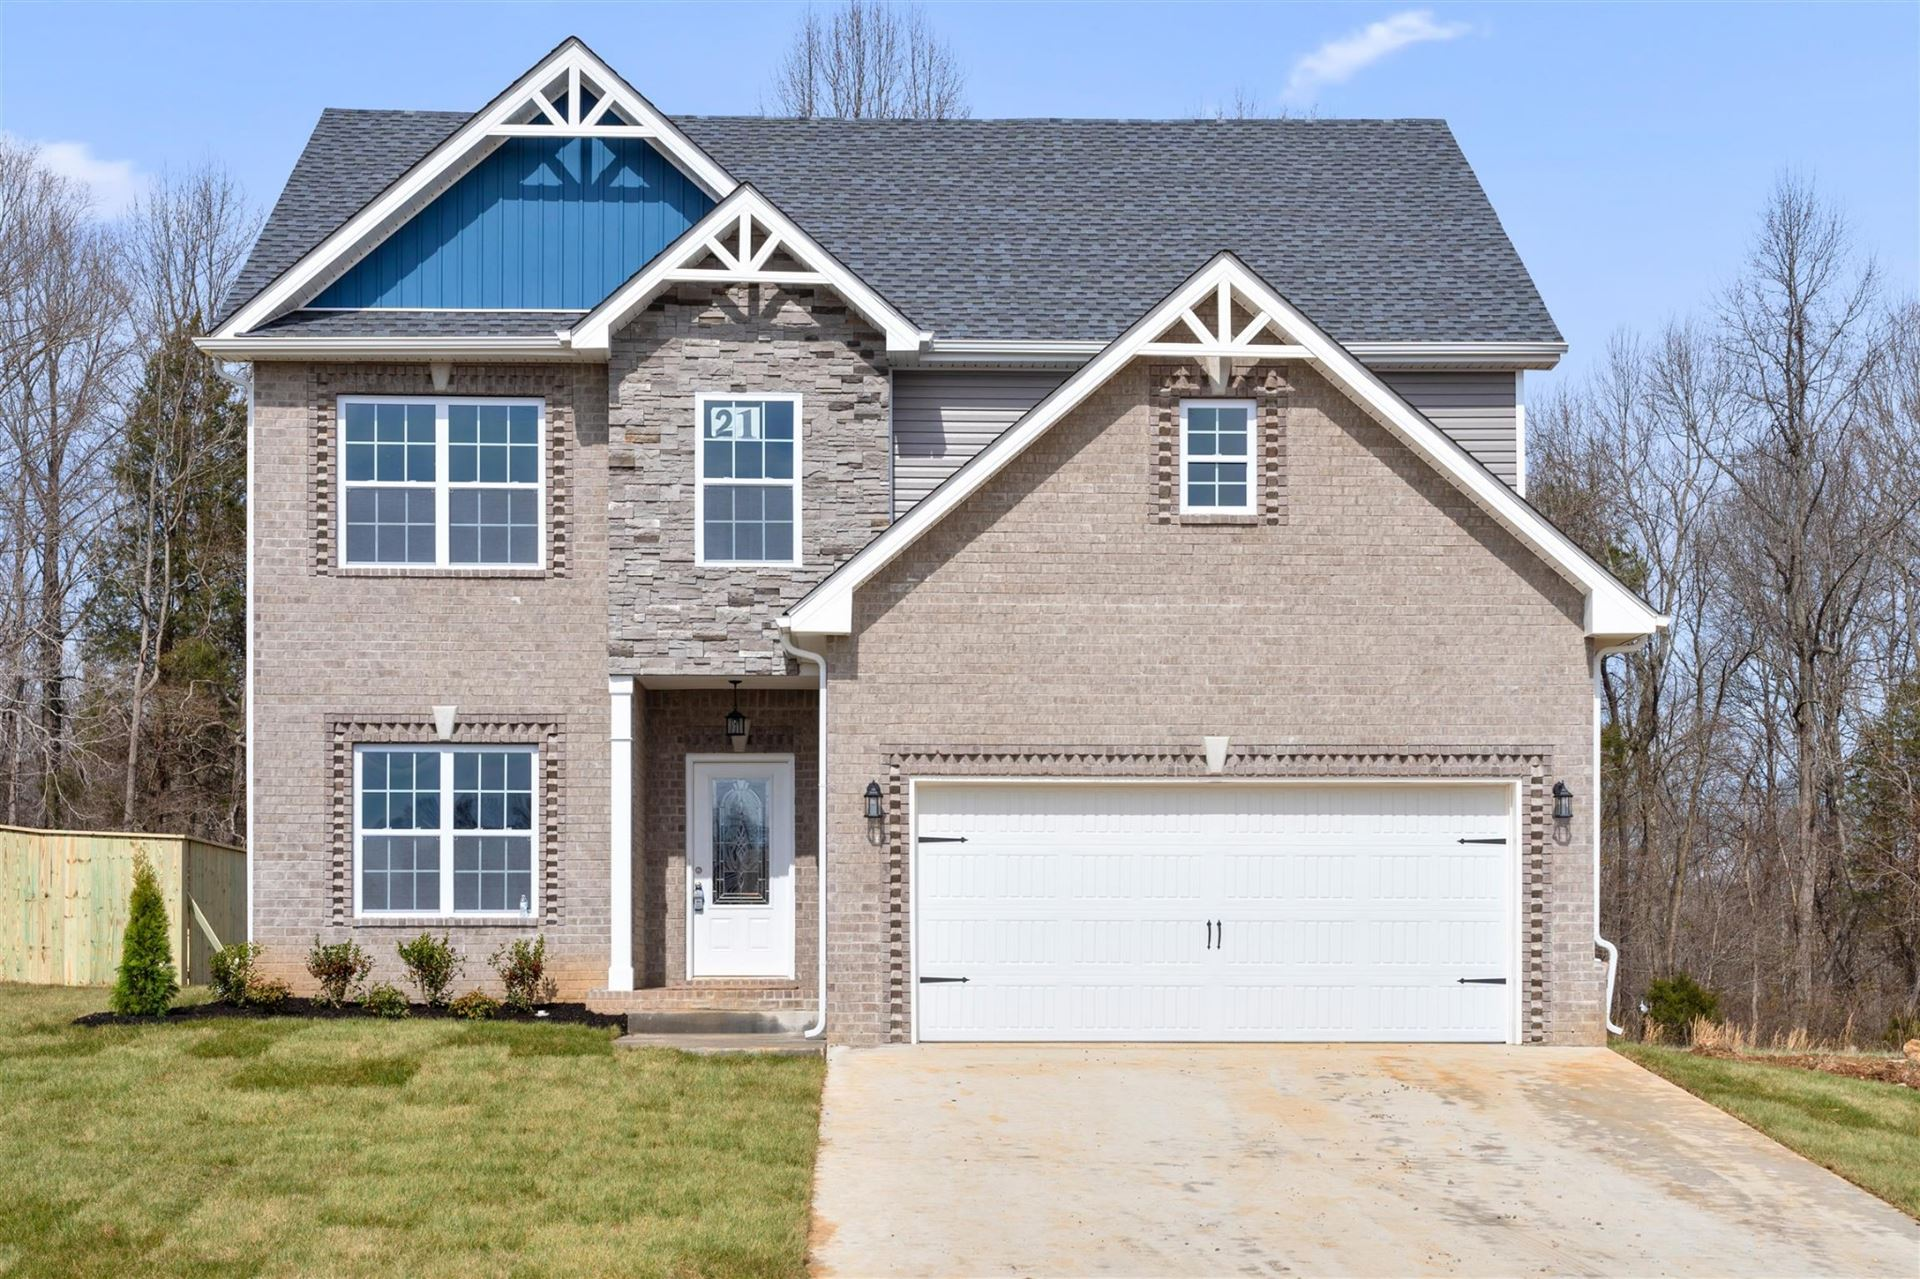 43 River Chase, Clarksville, TN 37043 - MLS#: 2292563